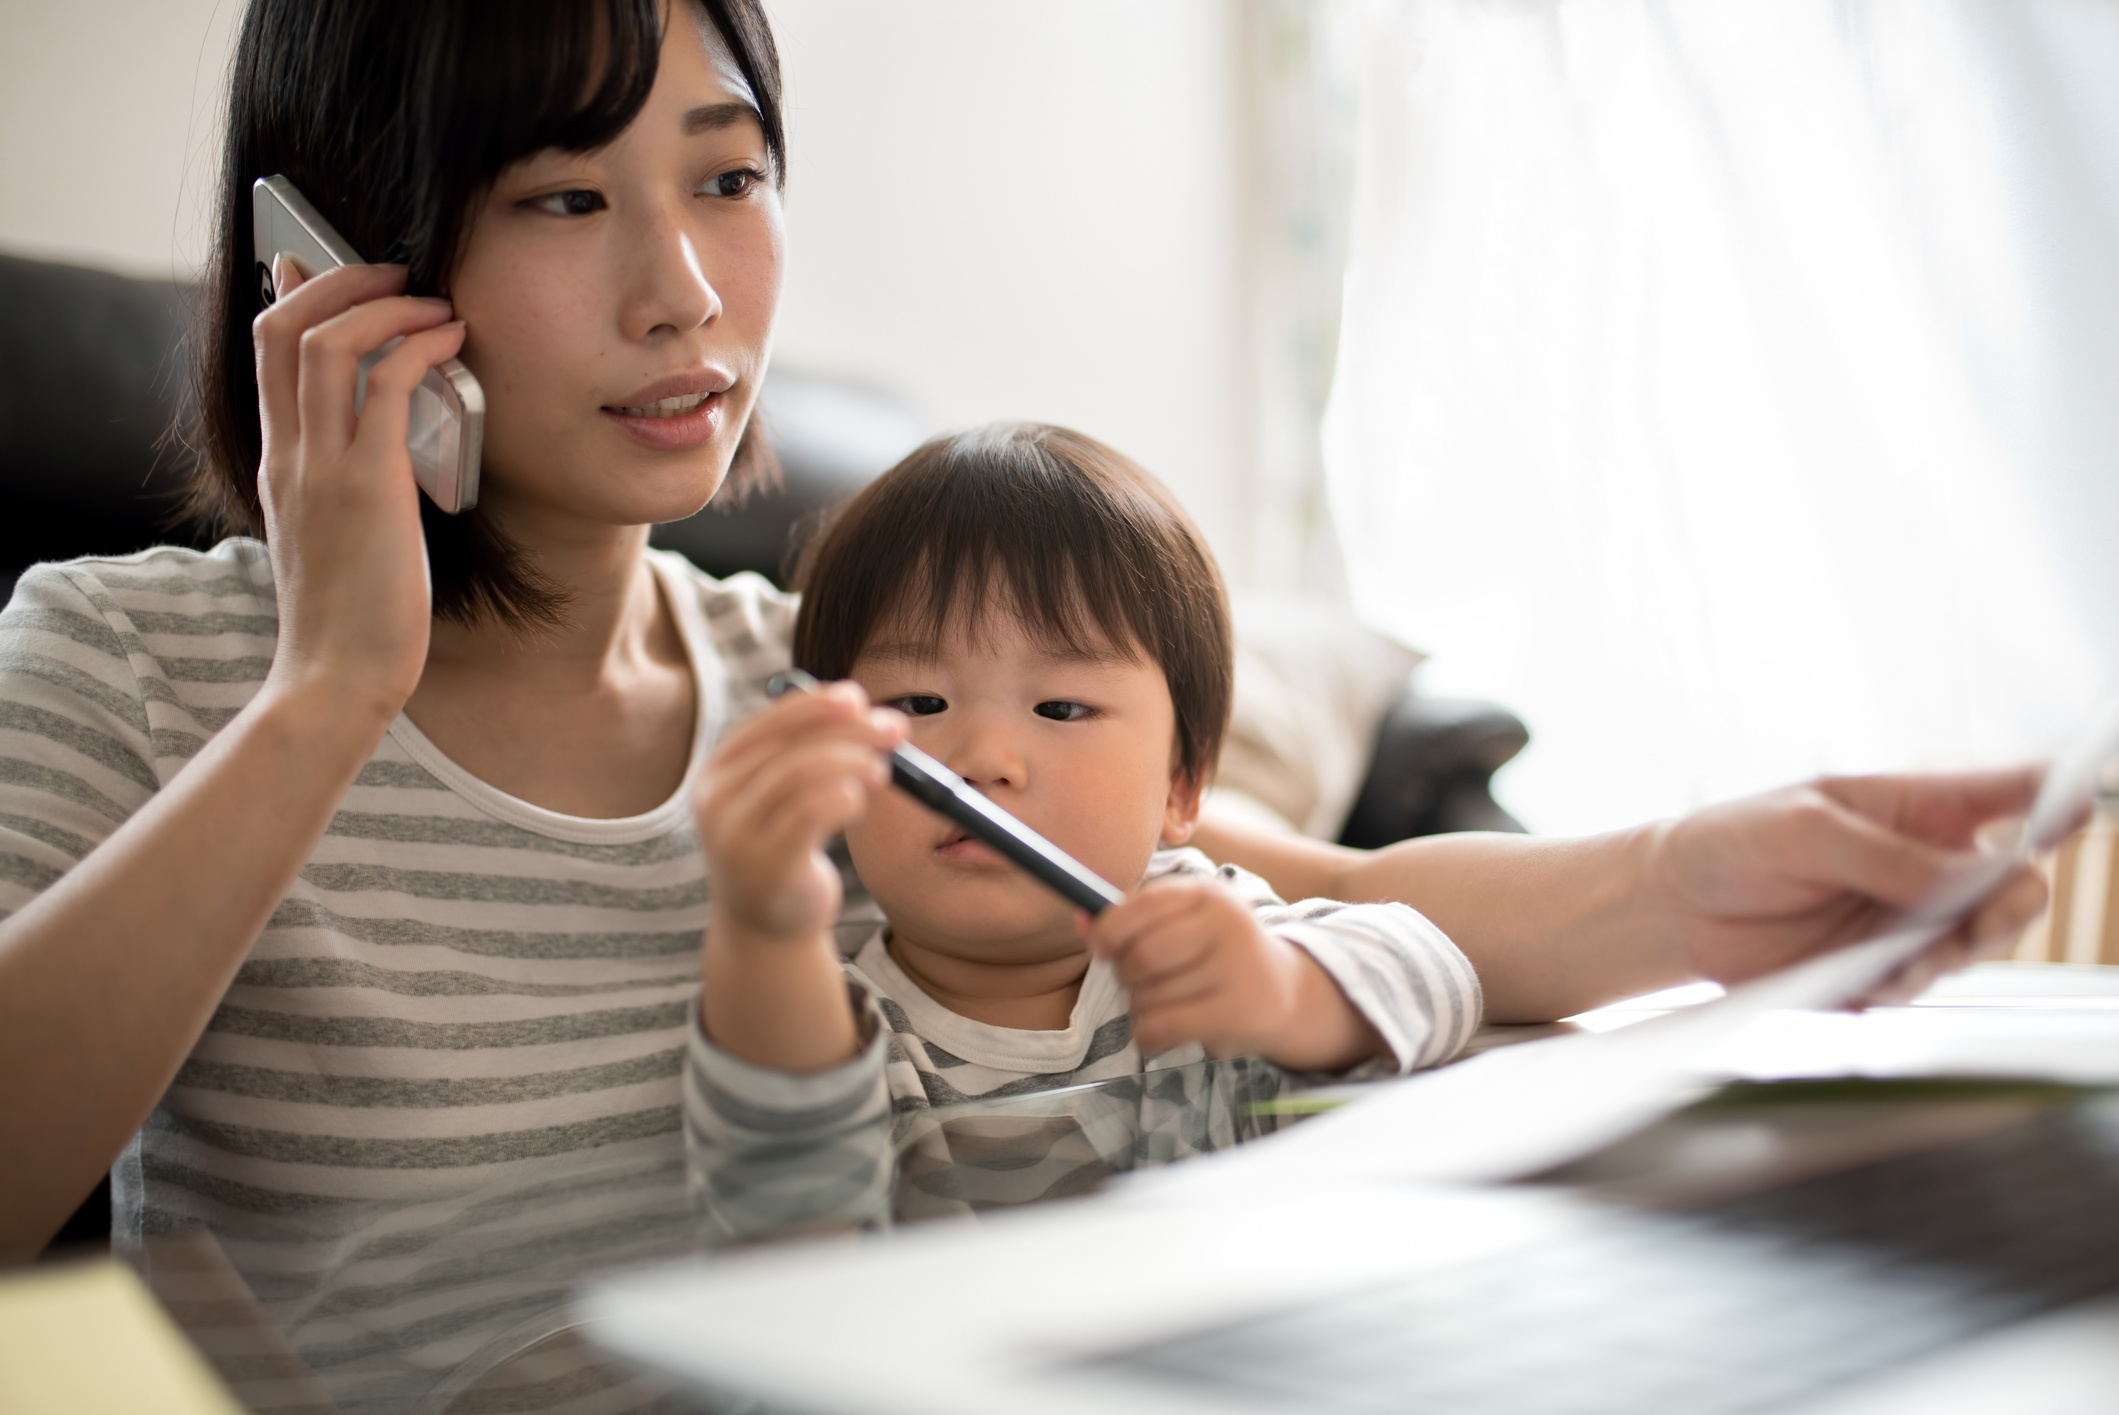 woman talking on phone while toddler sits on her lap playing with a pen.